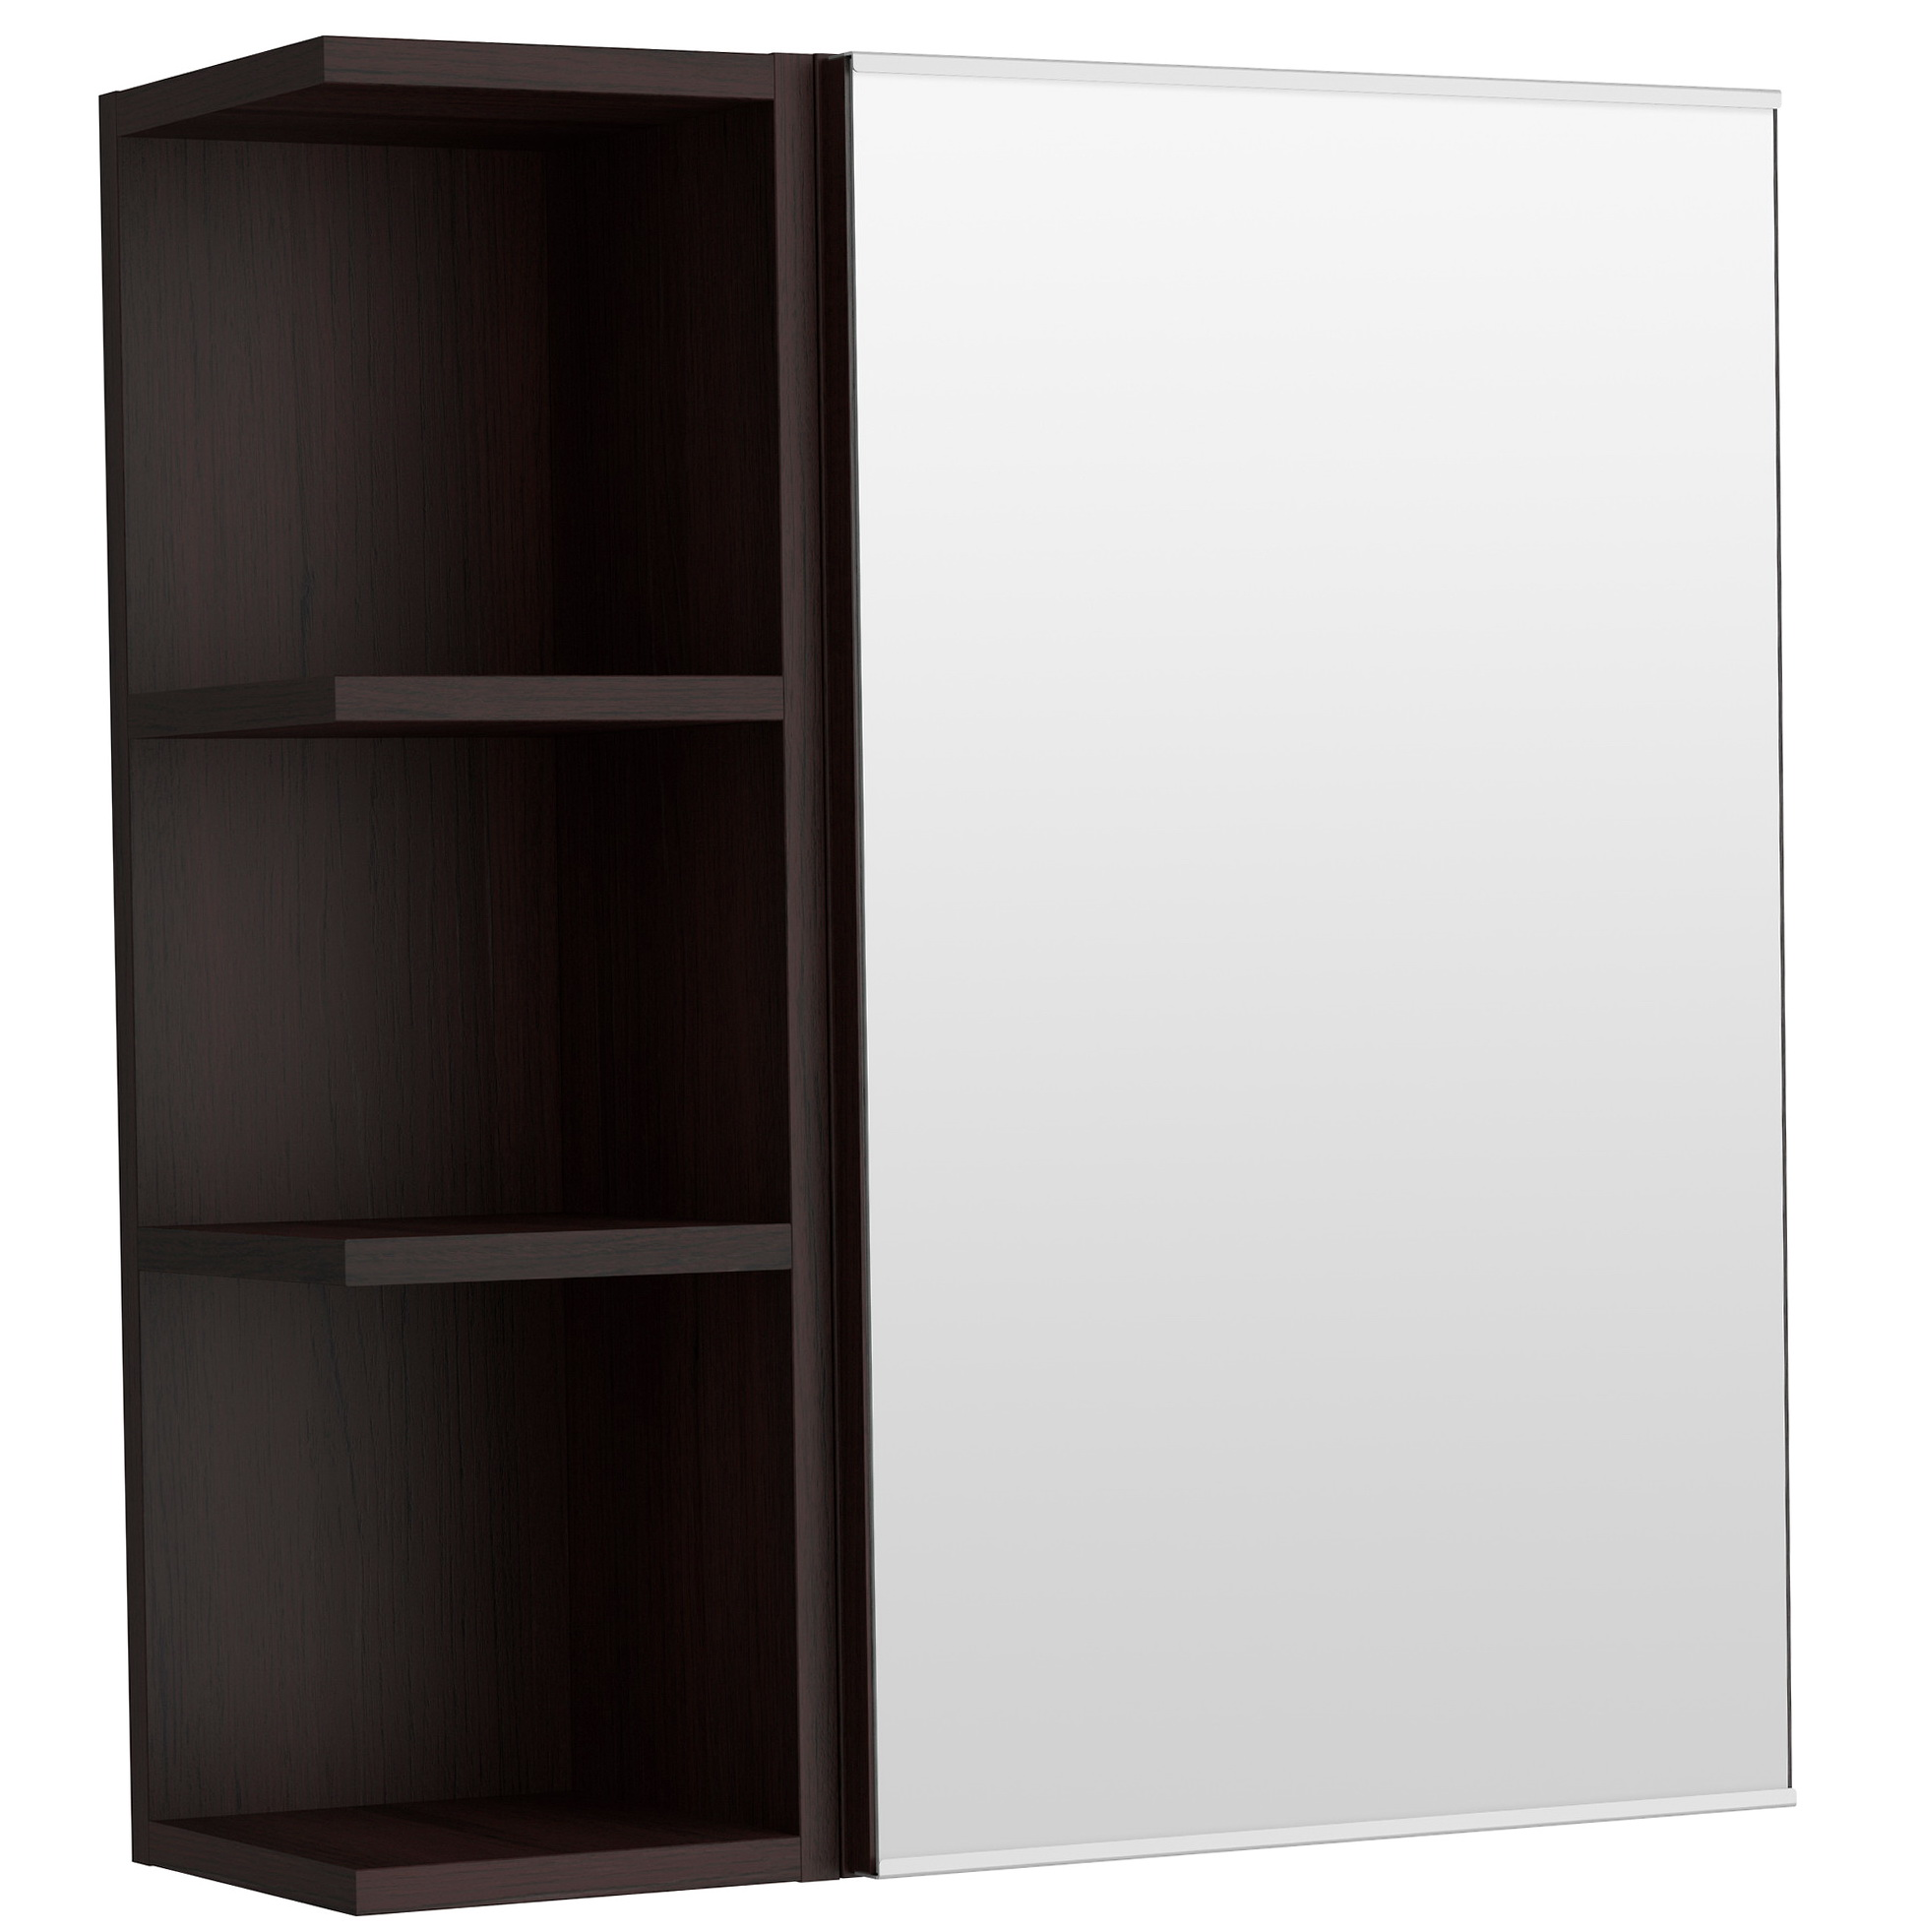 ikea bathroom mirror with shelf ikea bathroom mirror shelf home design ideas 23511